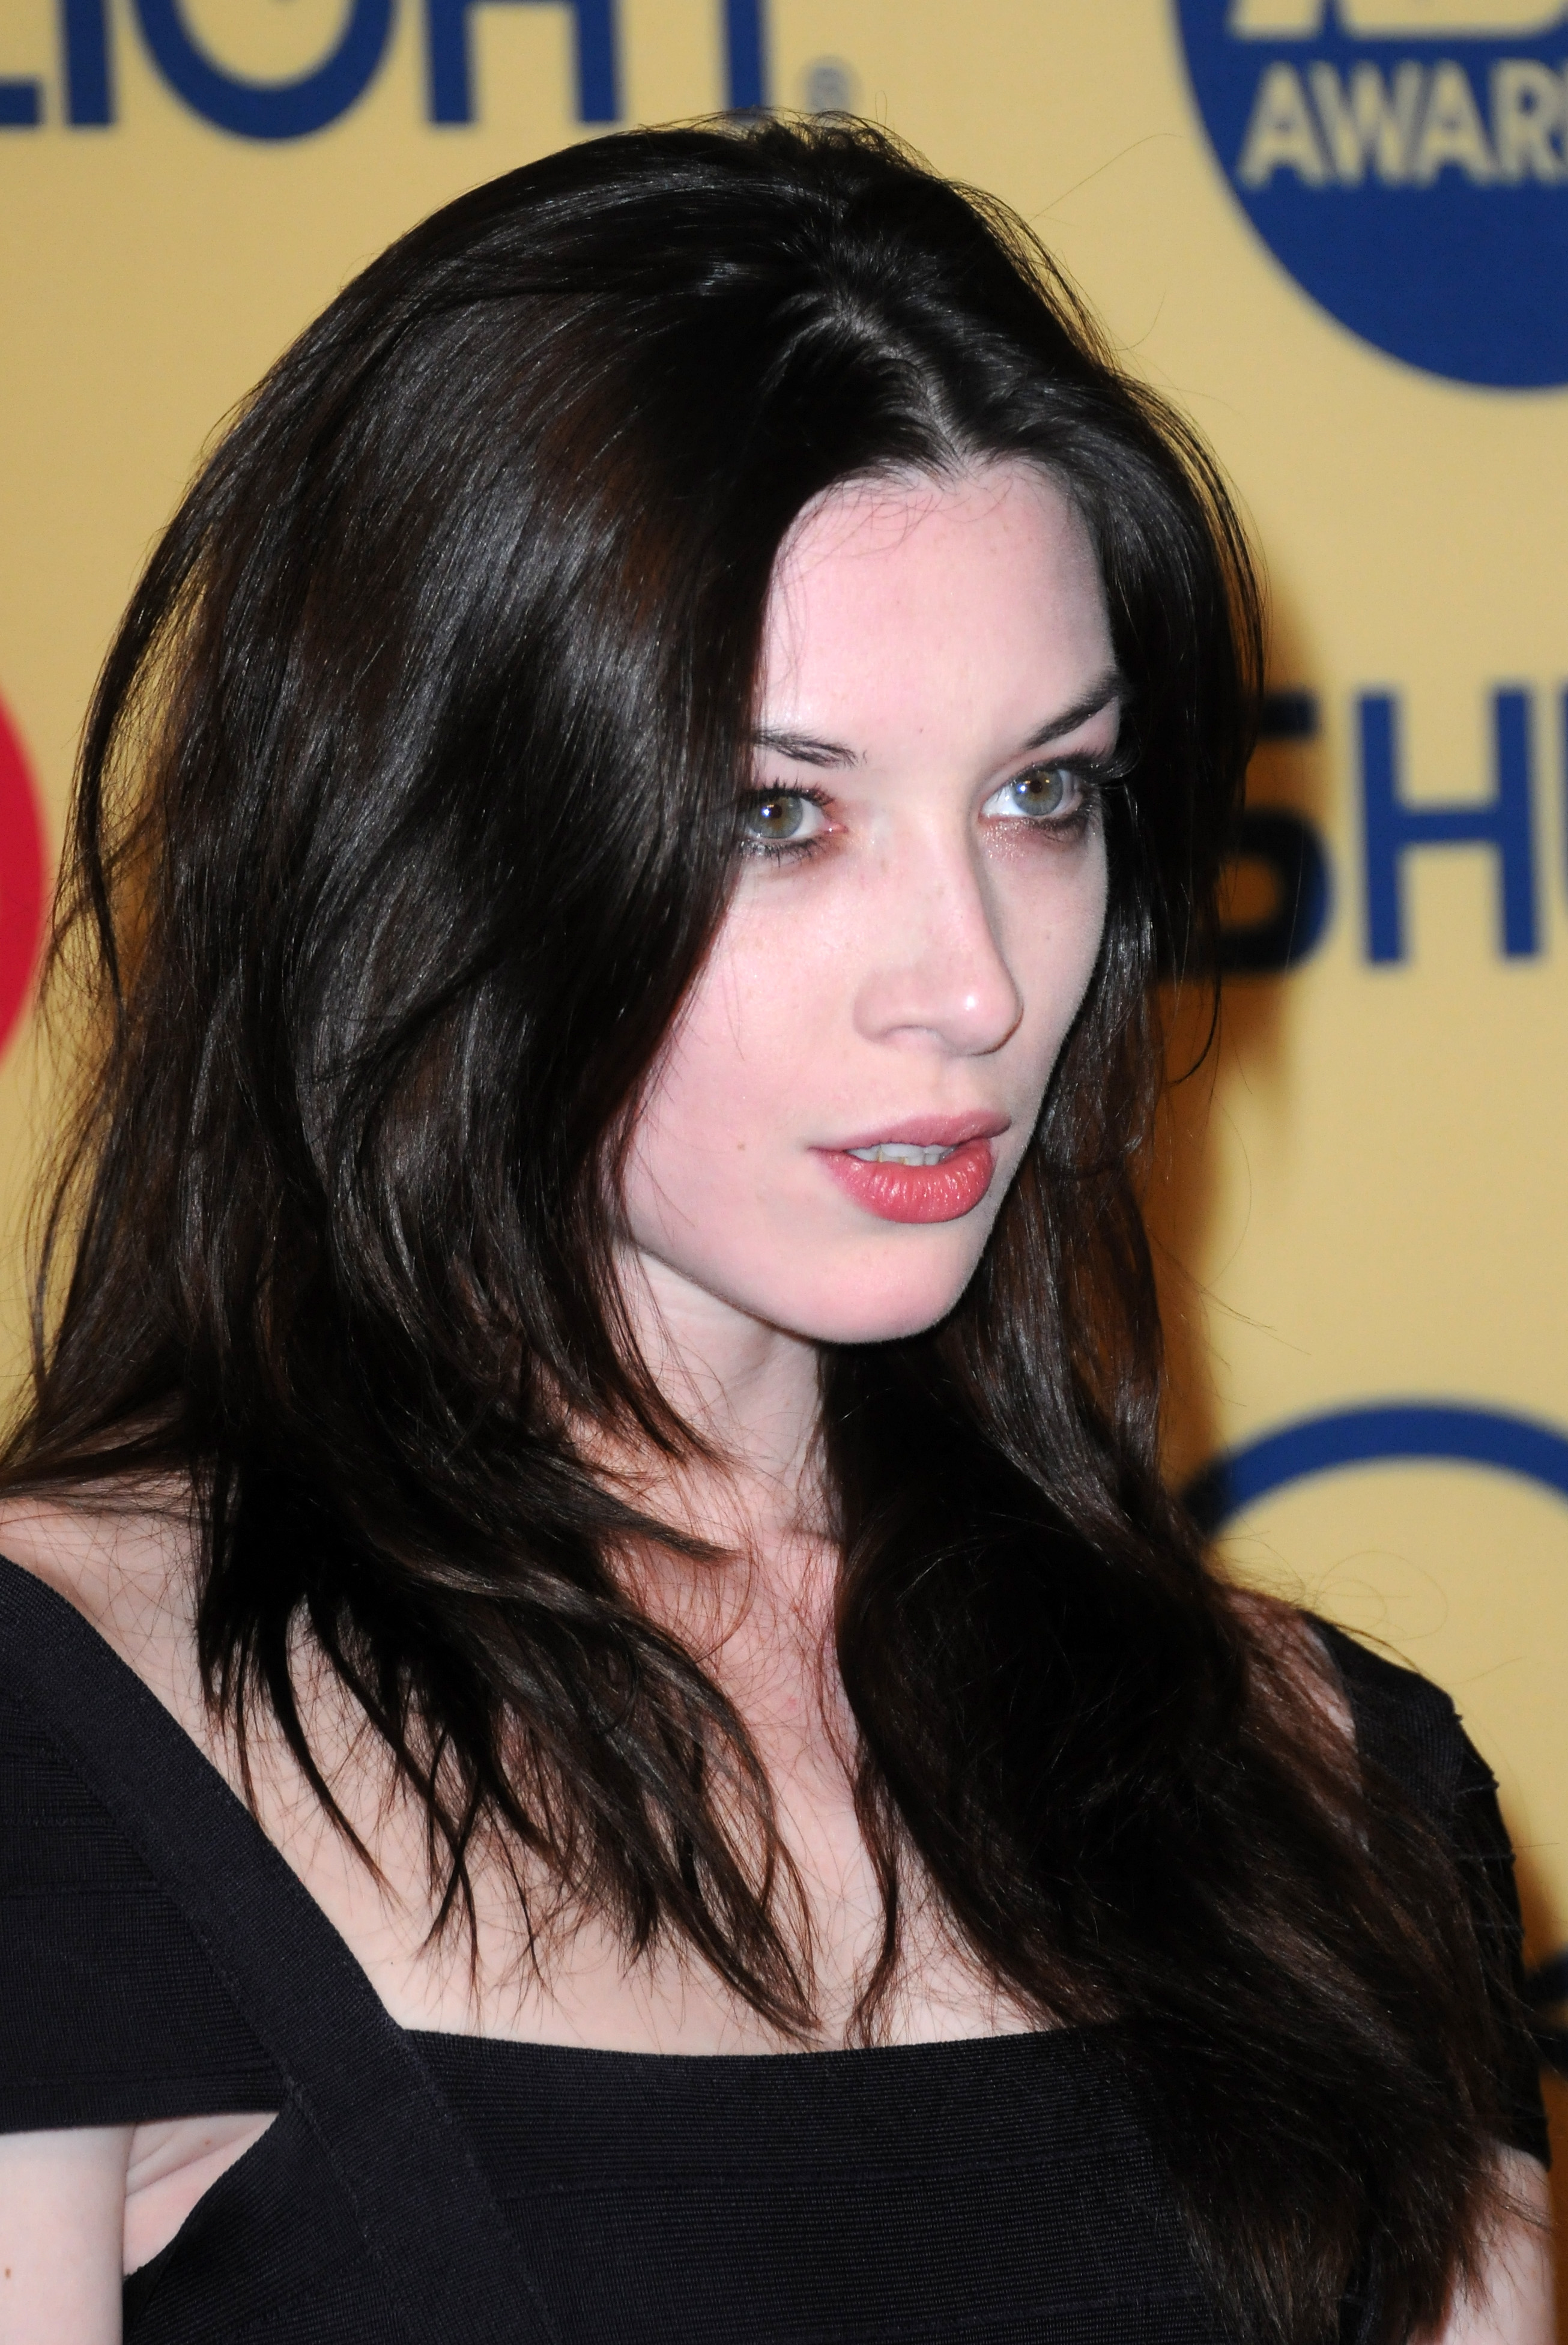 Stoya at the 2013 XBIZ Awards in Century City, Calif., Jan. 11, 2013.